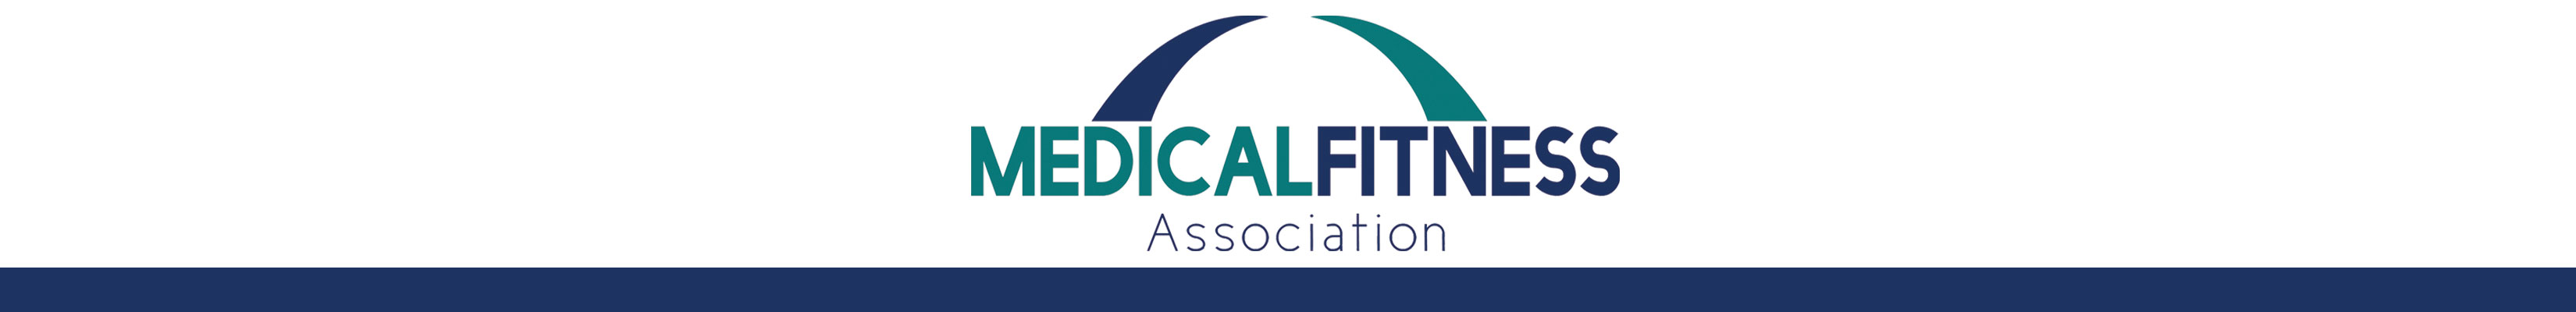 Medical Fitness Association